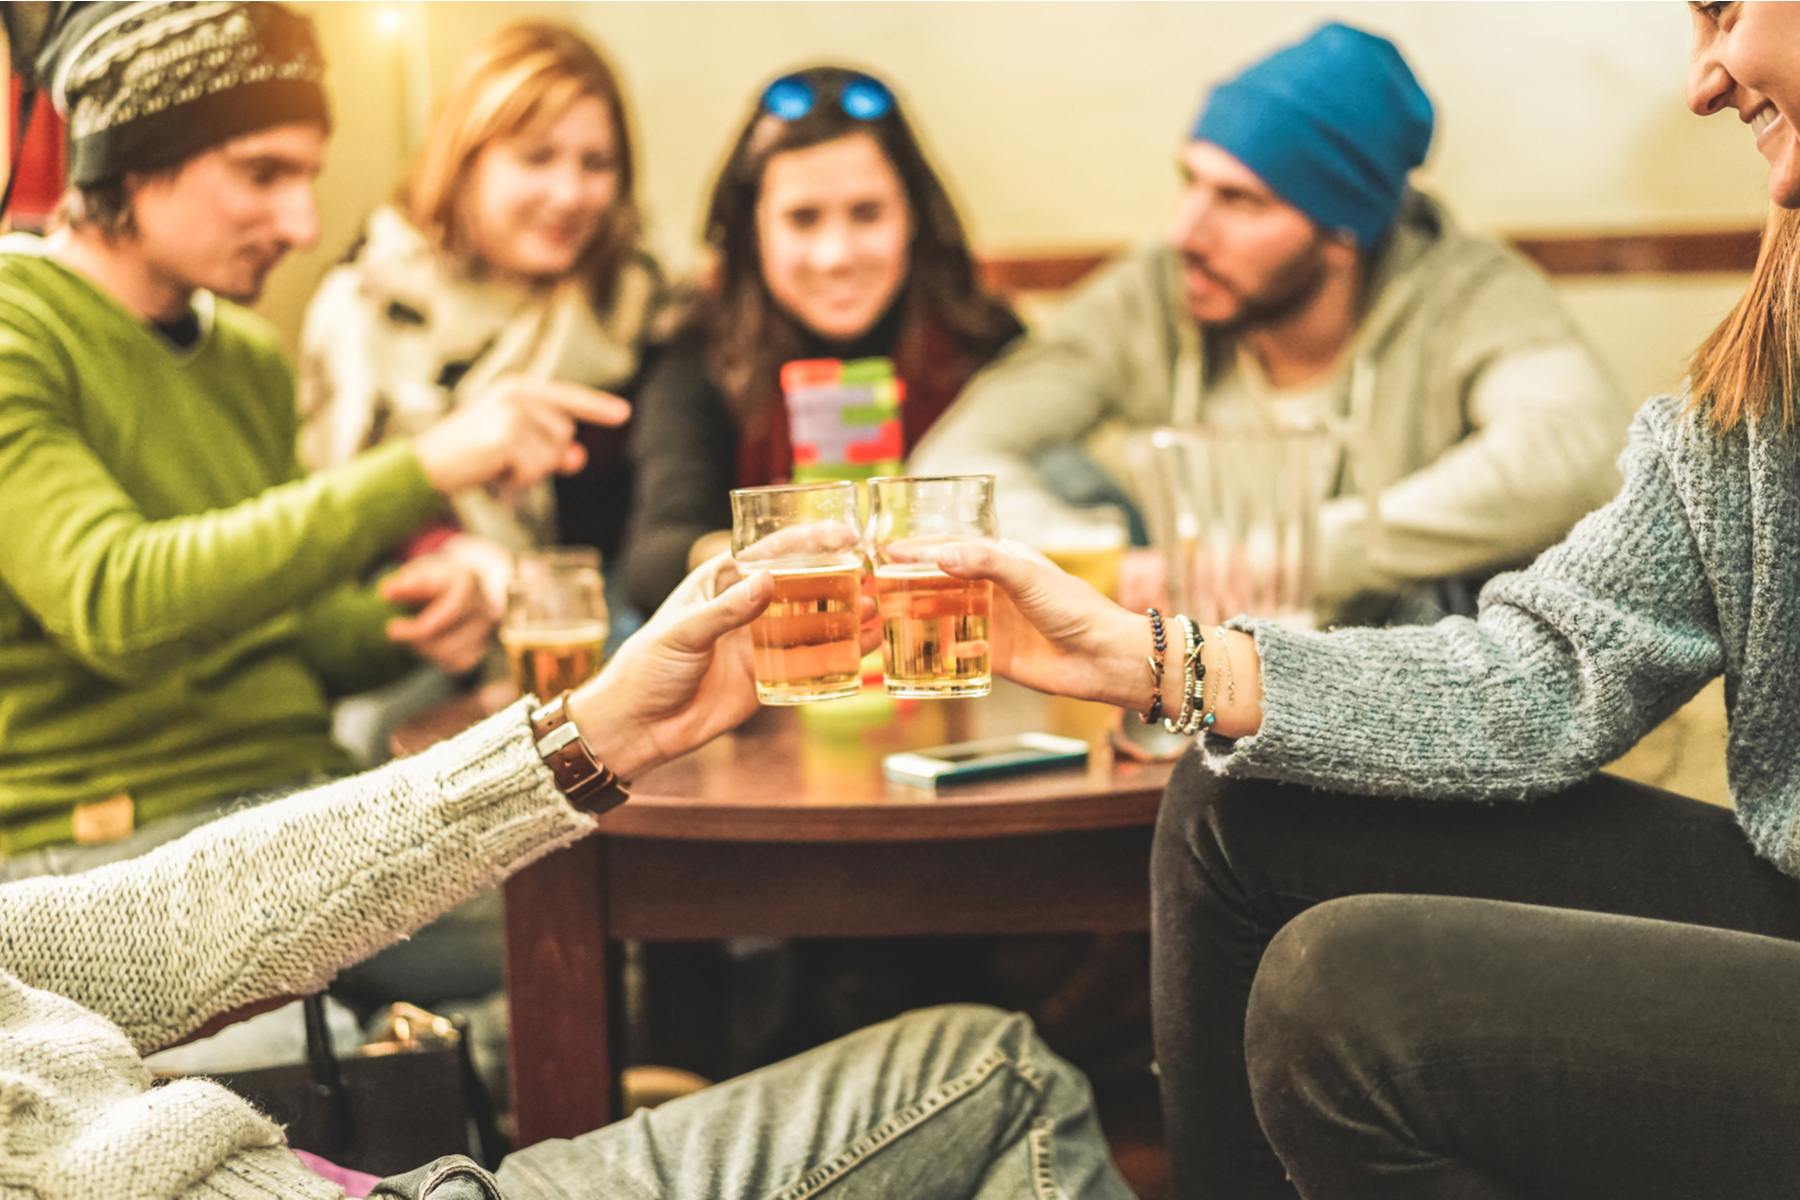 Friends drinking beer together after skiing